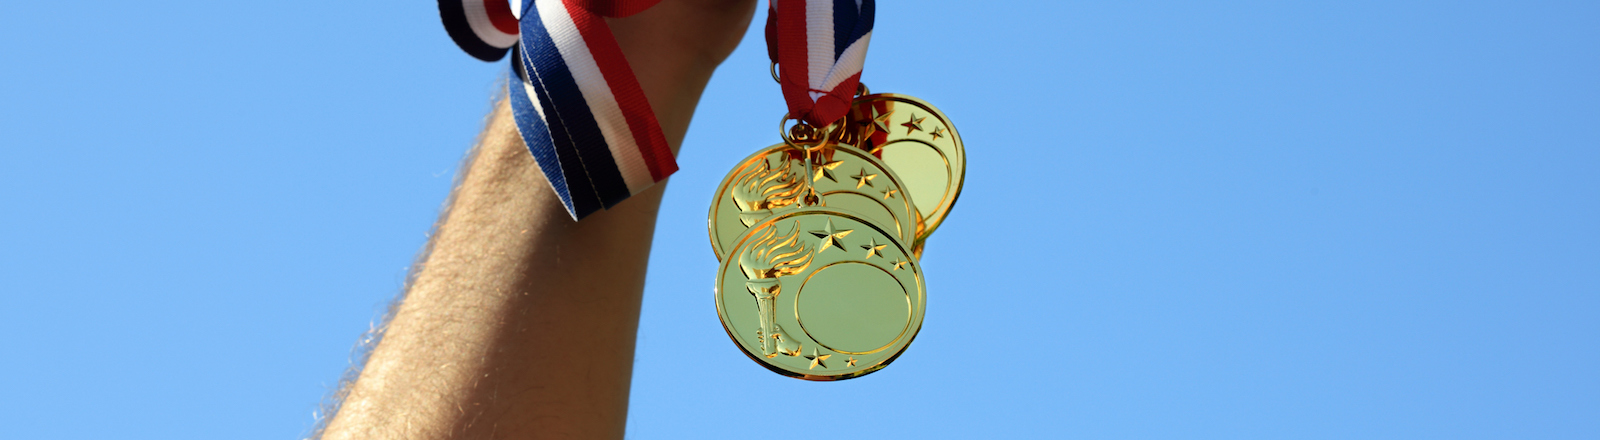 Winning at olympic games, hand holding gold medals